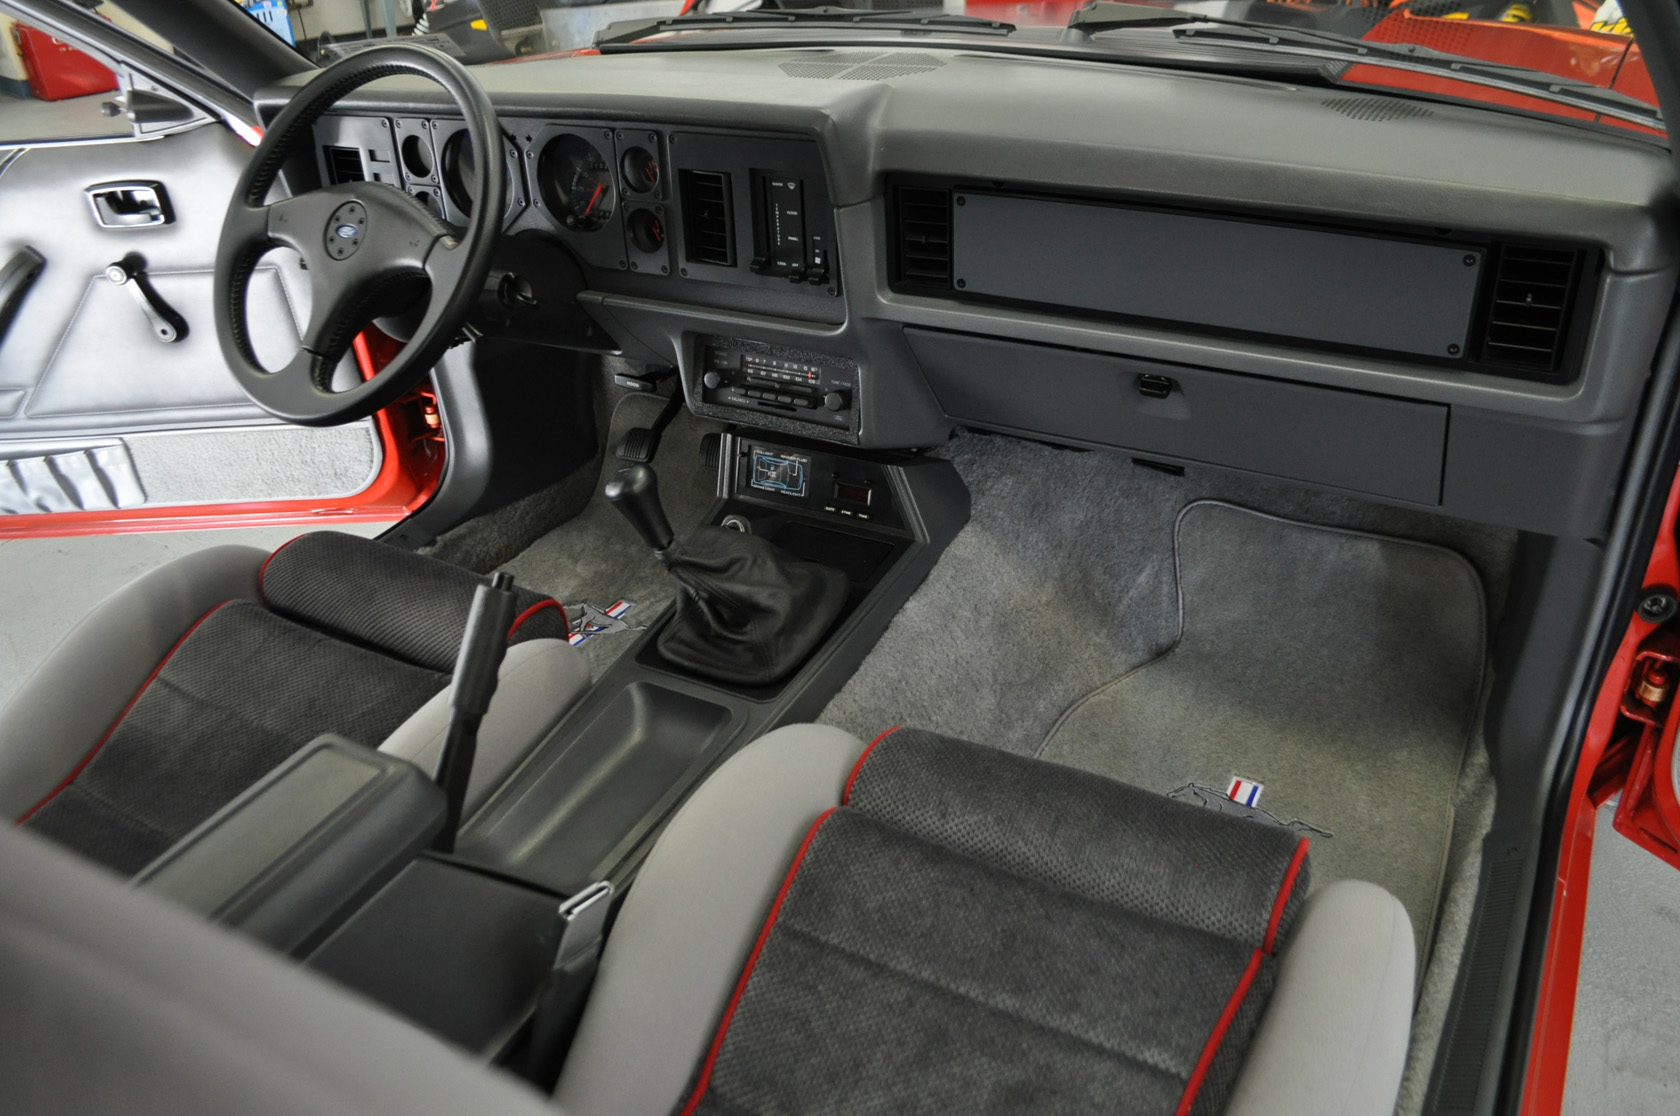 Ford Mustang Photo Gallery 1985 Mustang Gt Interior